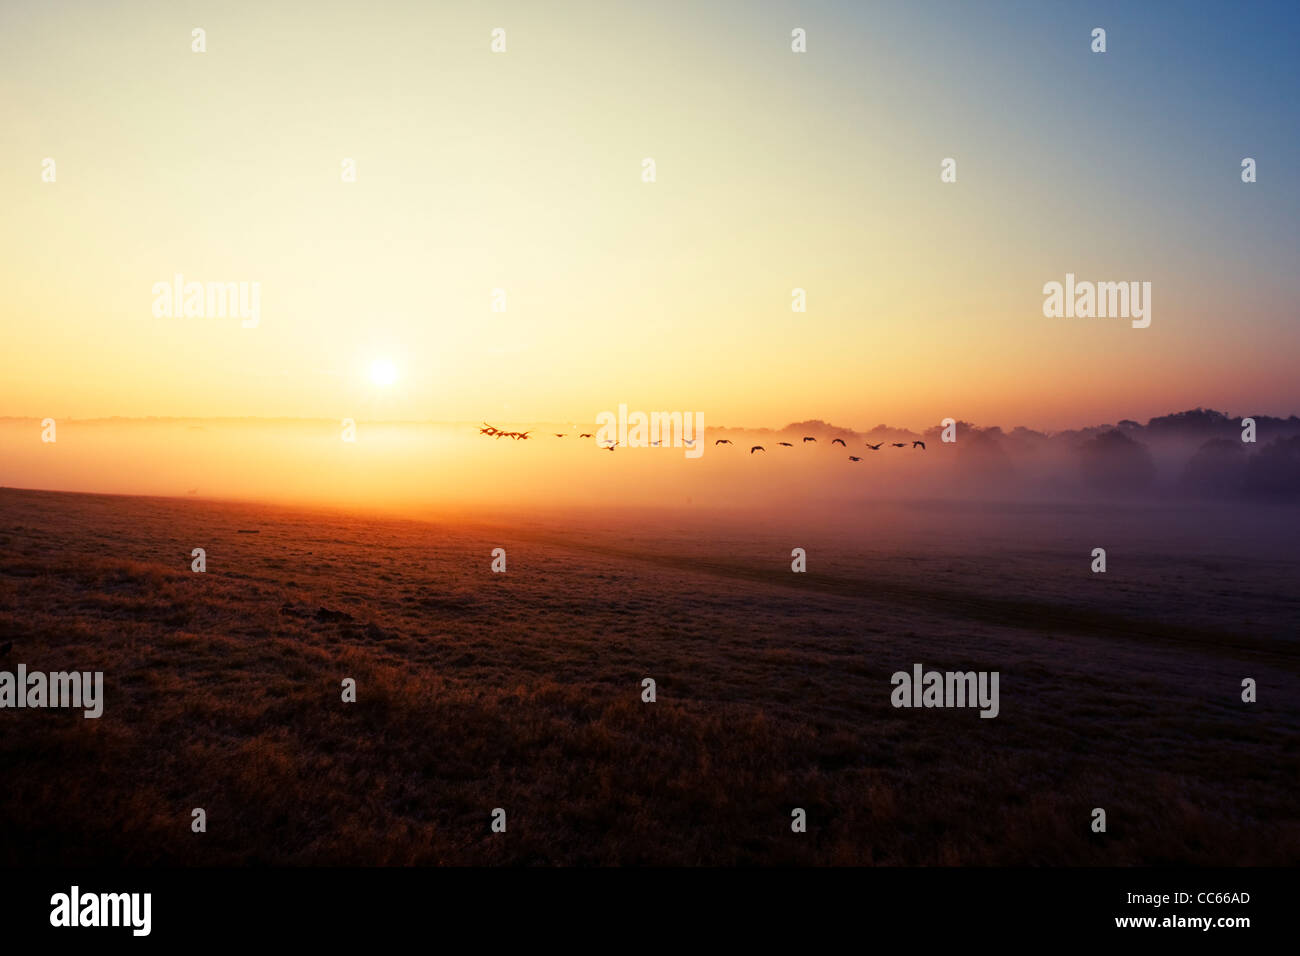 Flock of wild ducks flying in the sunrise. Richmond Park, London, England, UK. - Stock Image